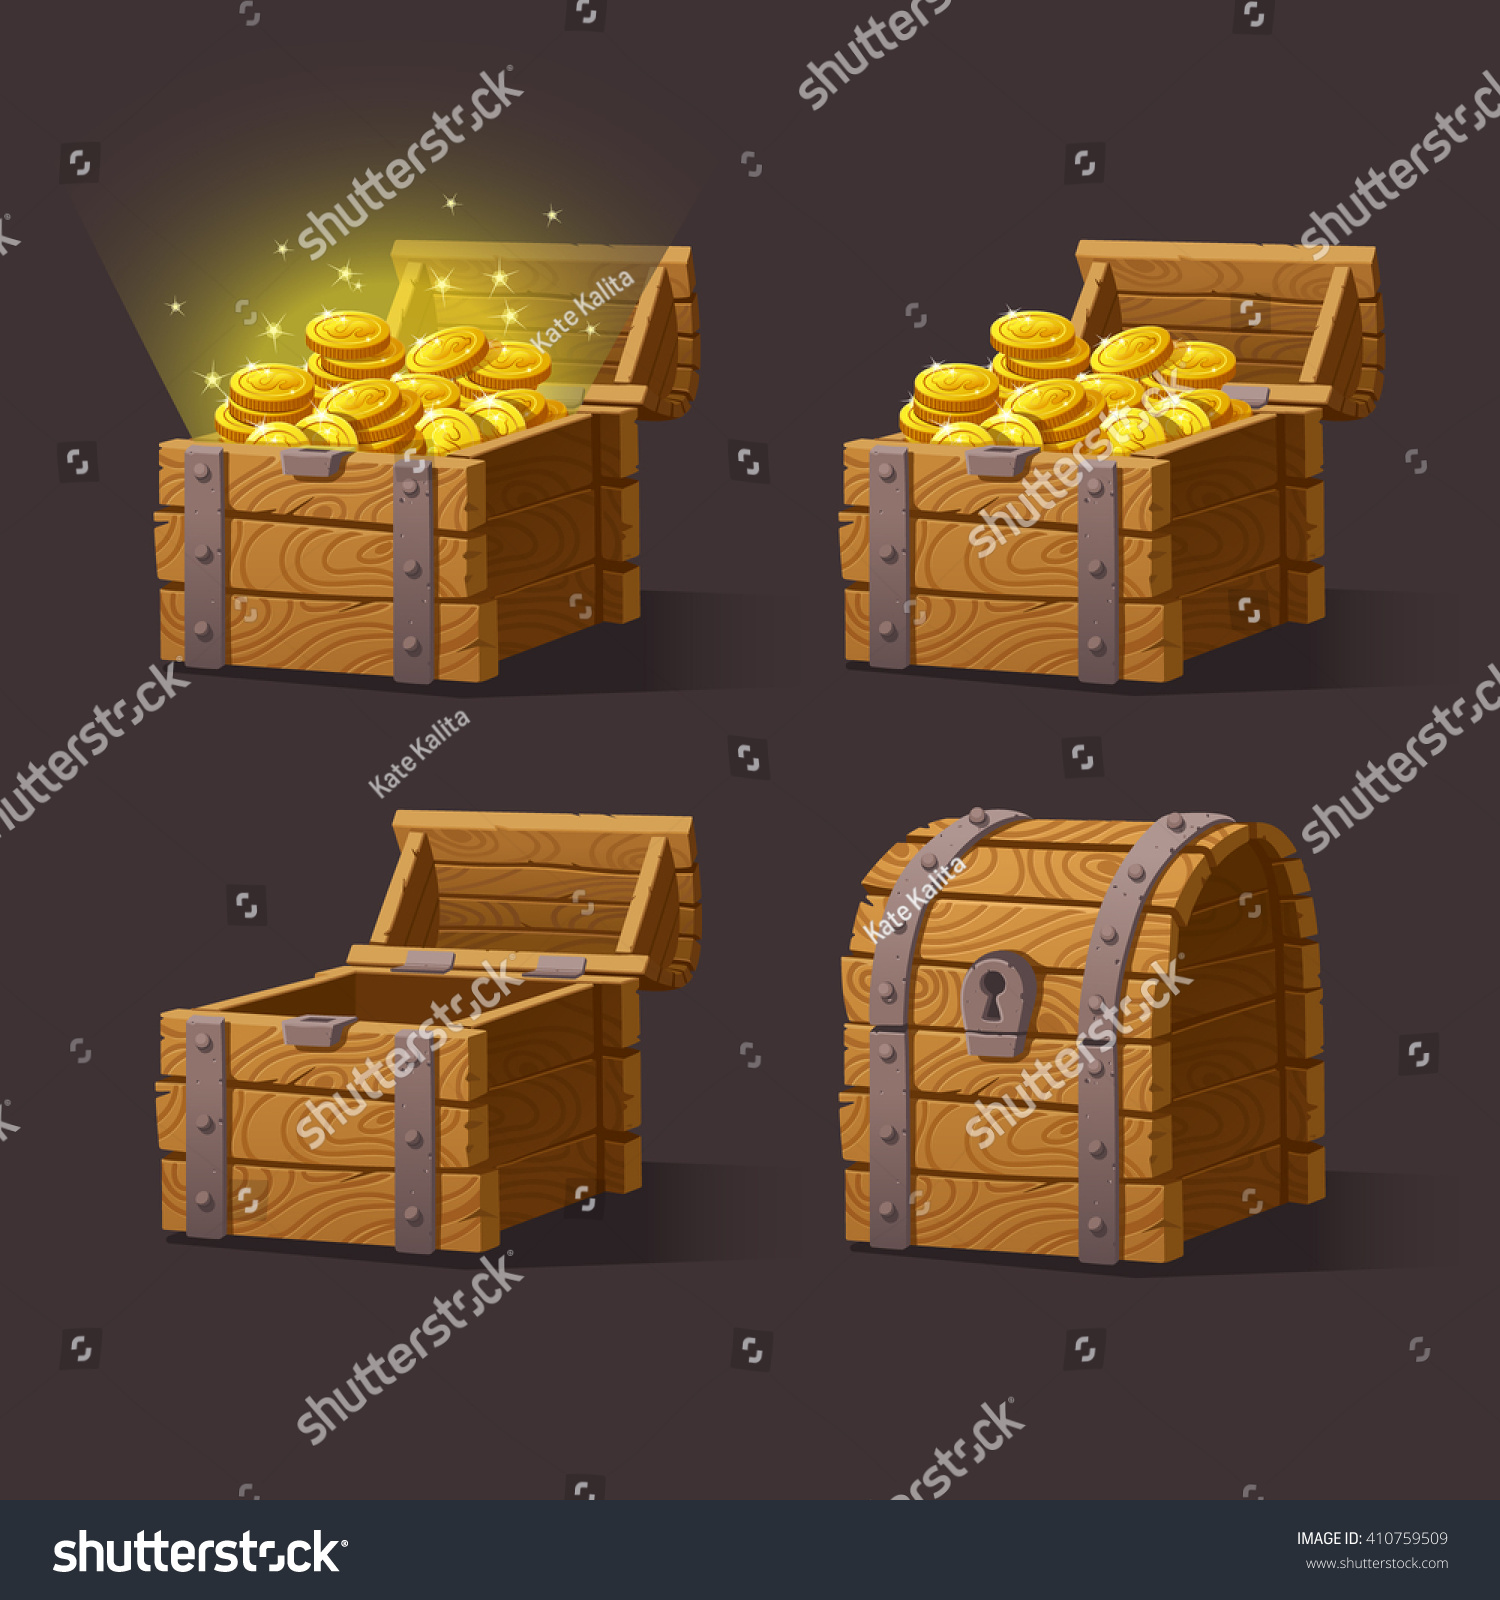 Chest Game Set Wooden Chest Set Game Interfacevector Illustration Stock